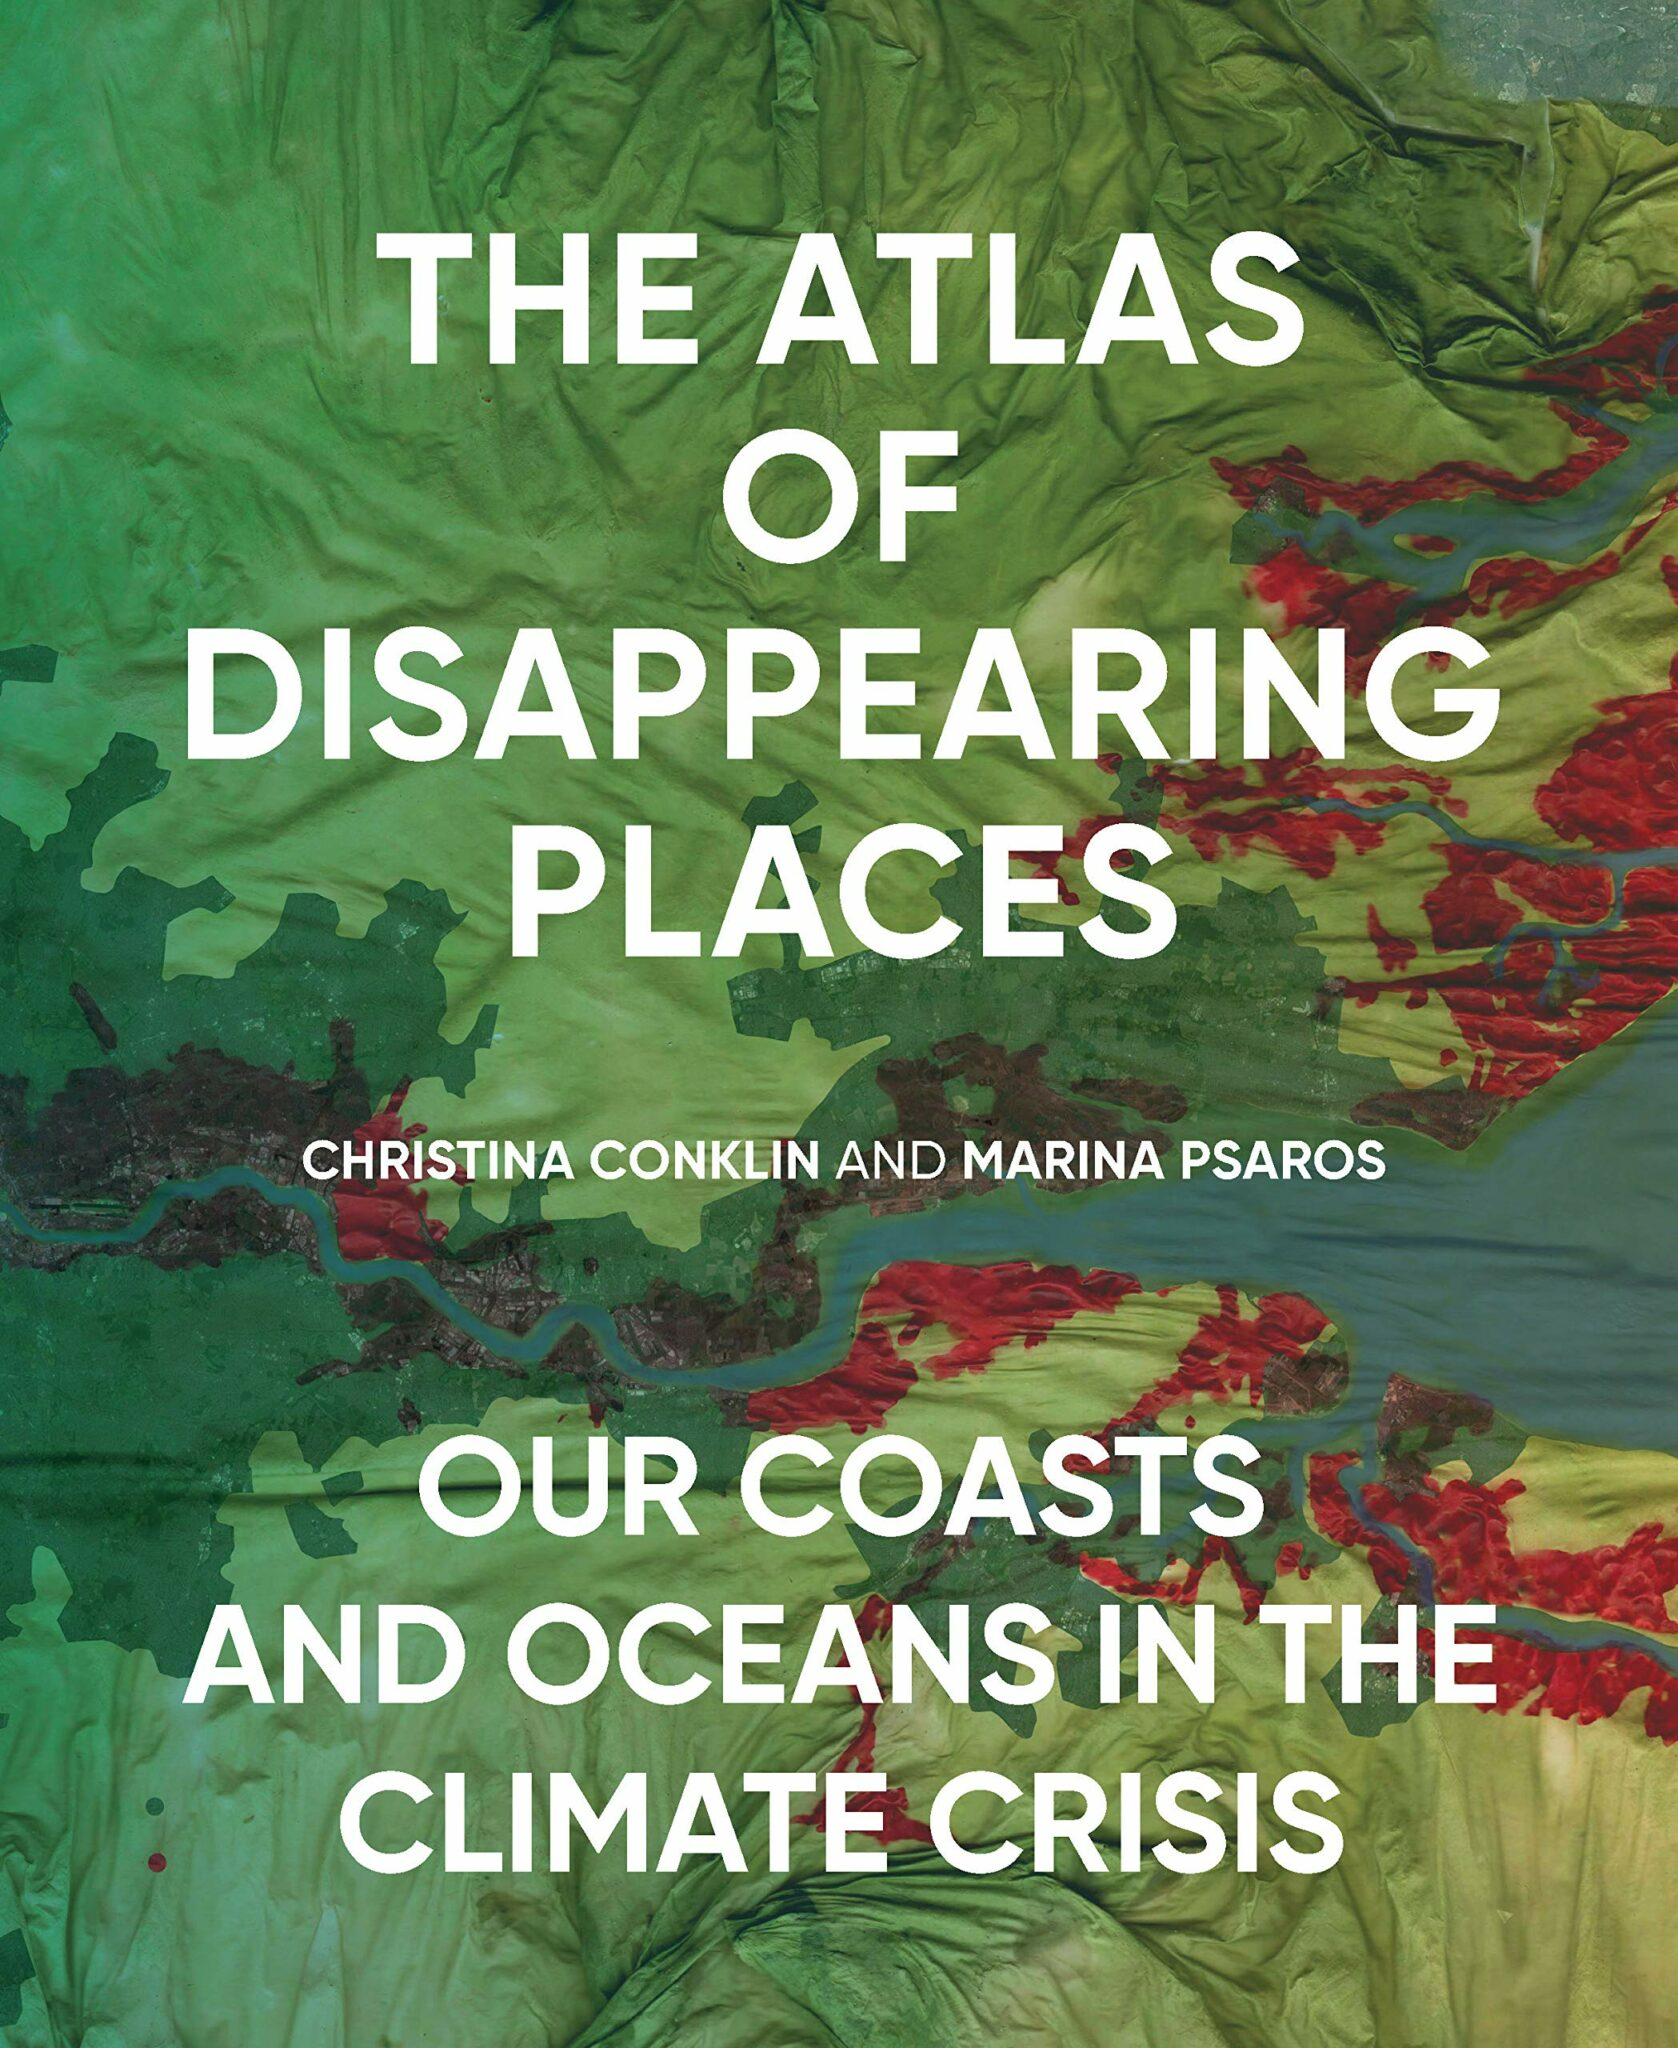 Christina Conklin and Marina Psaros, The Atlas of Disappearing Places: Our Coasts and Oceans in the Climate Crisis